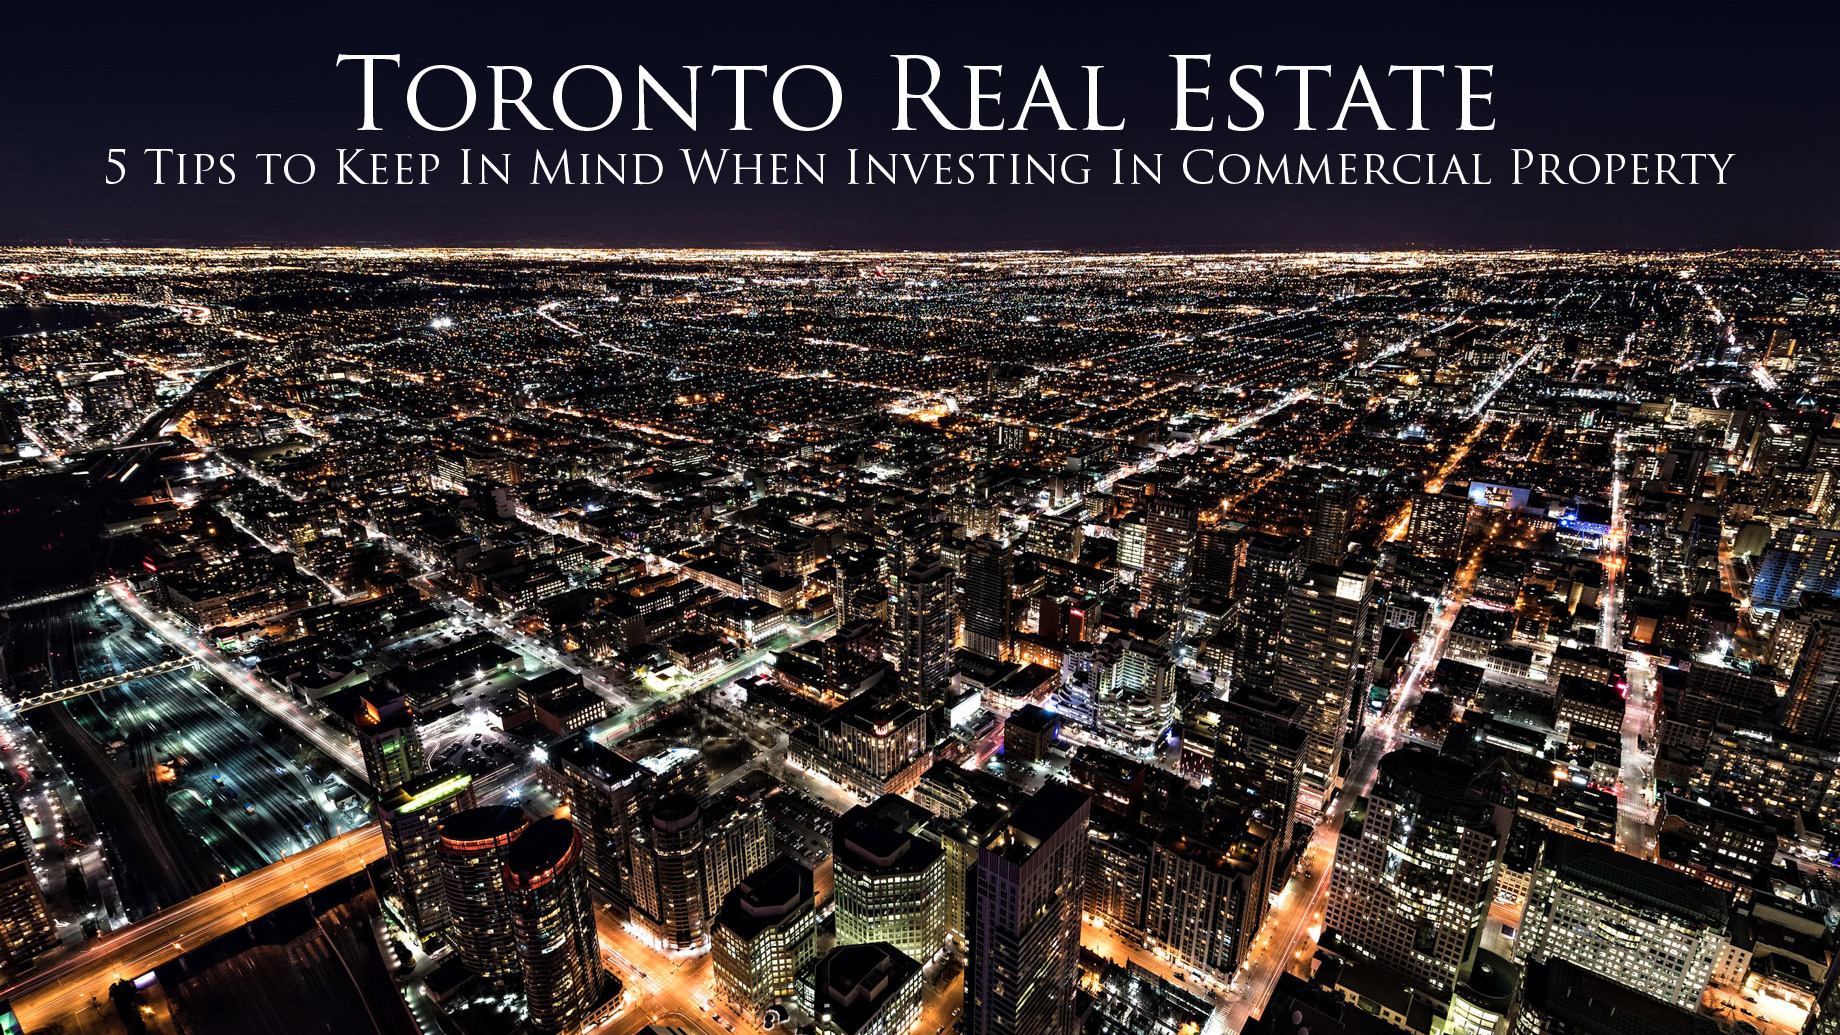 Toronto Real Estate - 5 Tips to Keep In Mind When Investing In Commercial Property